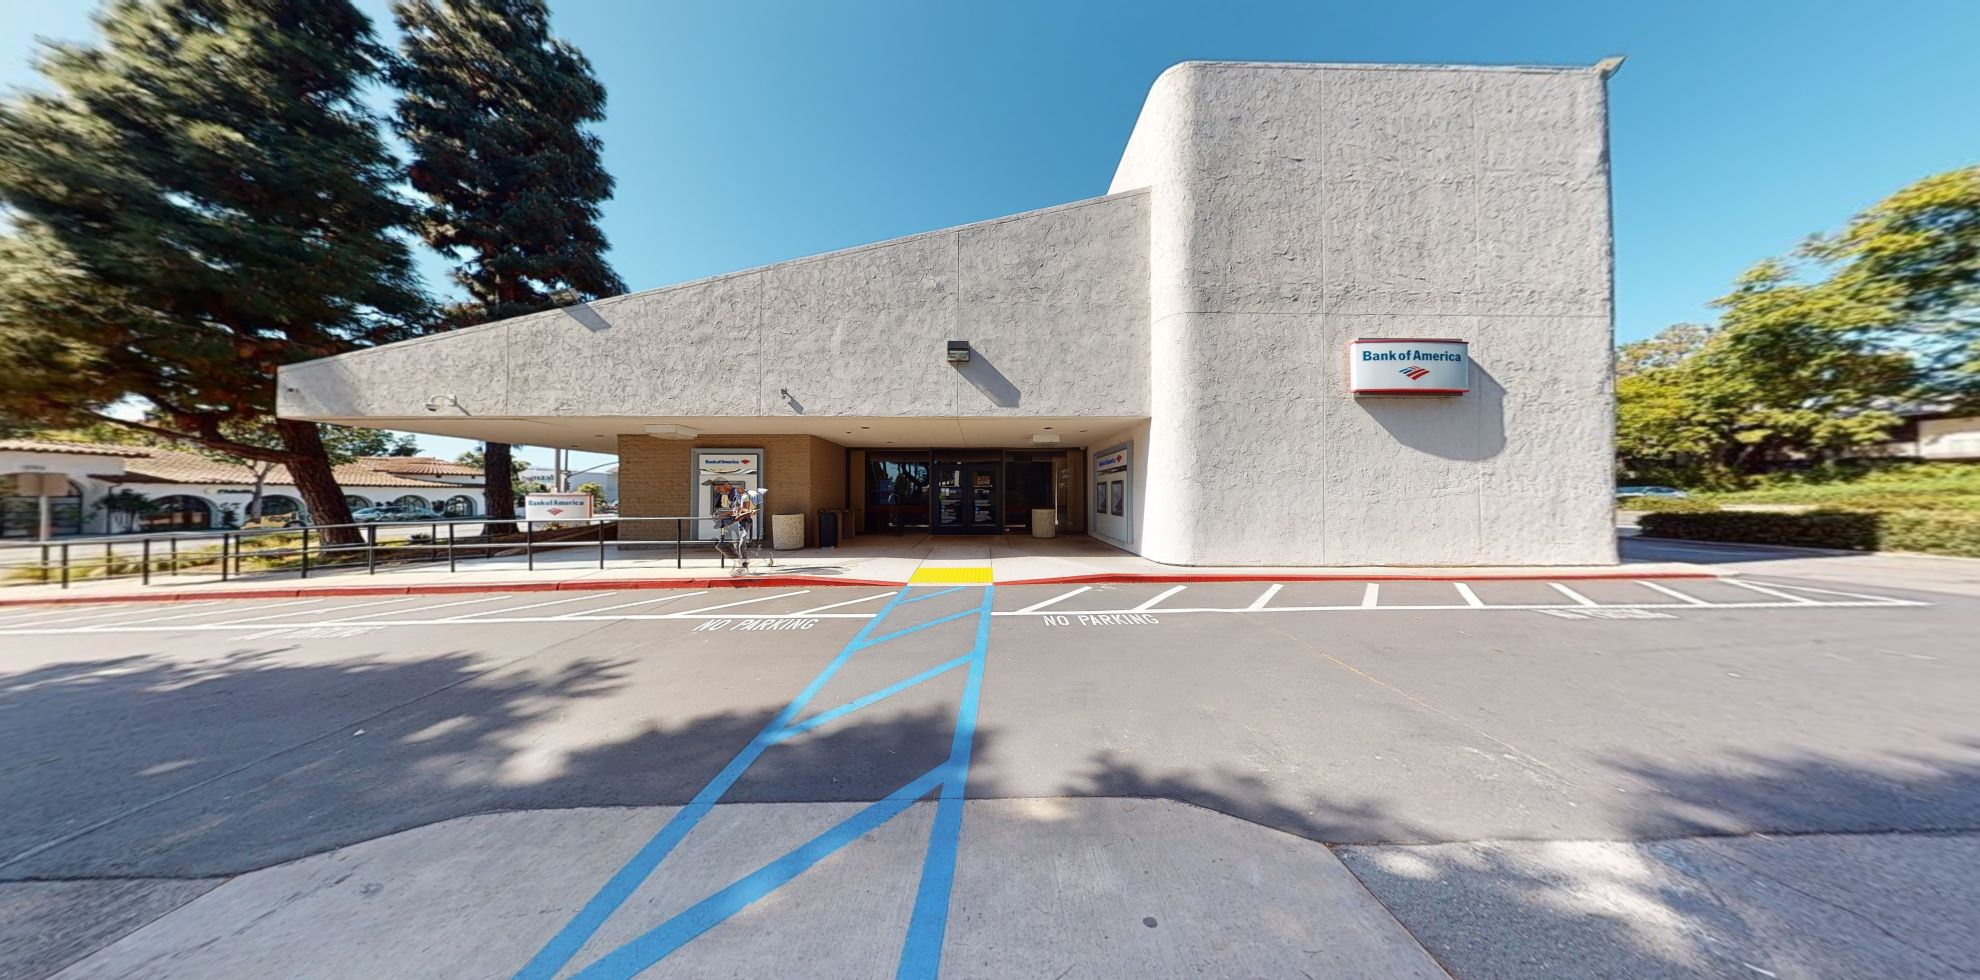 Bank of America financial center with walk-up ATM | 3790 State St, Santa Barbara, CA 93105